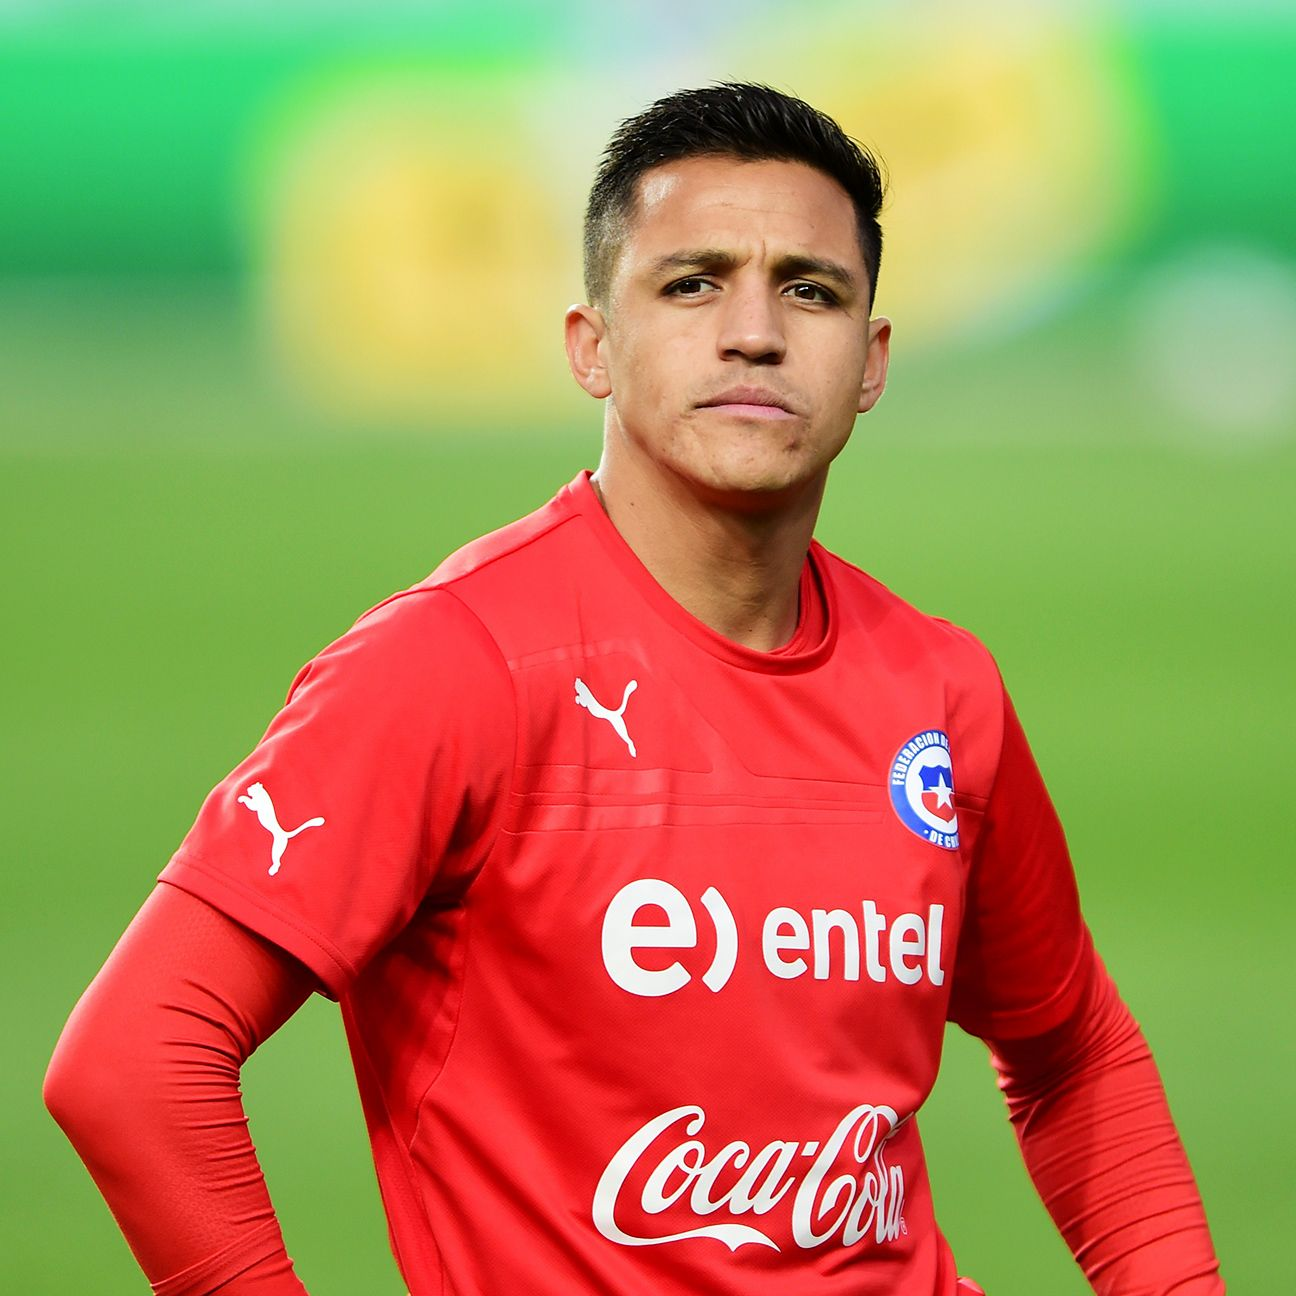 Chile are heavily reliant upon the explosive playmaking of star forward Alexis Sanchez.